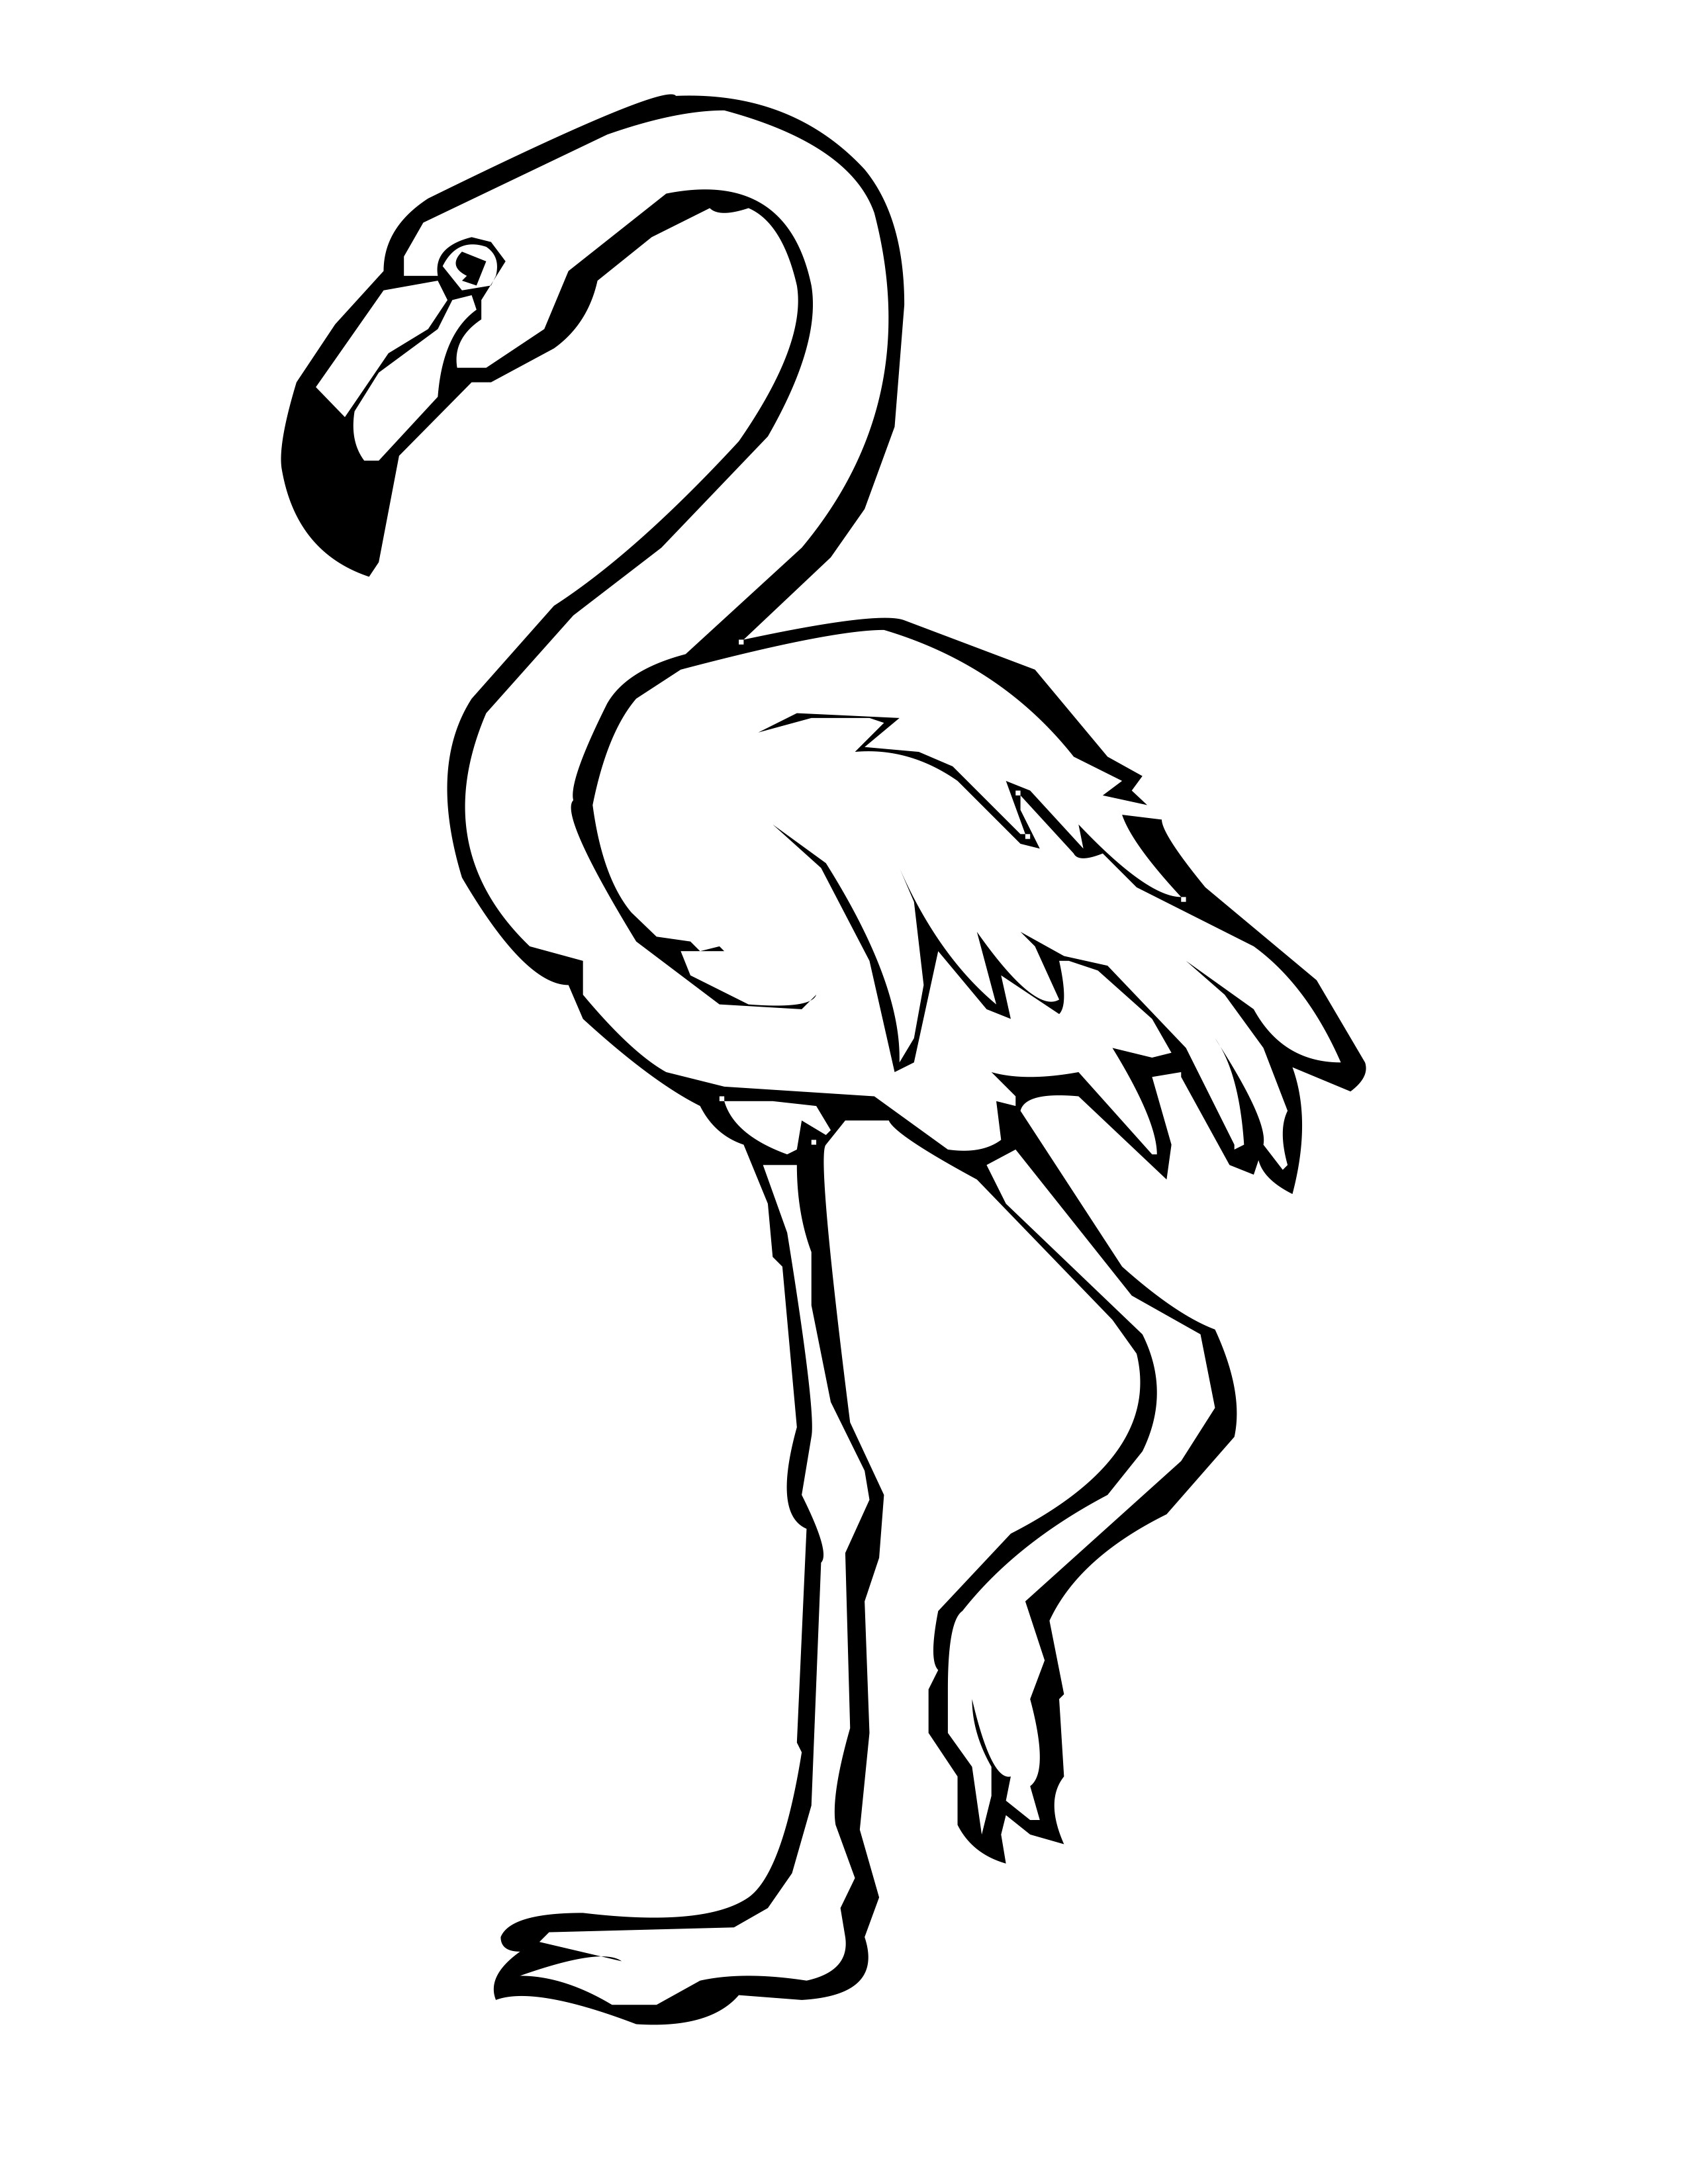 printable images of birds bird coloring pages printable of images birds 1 1